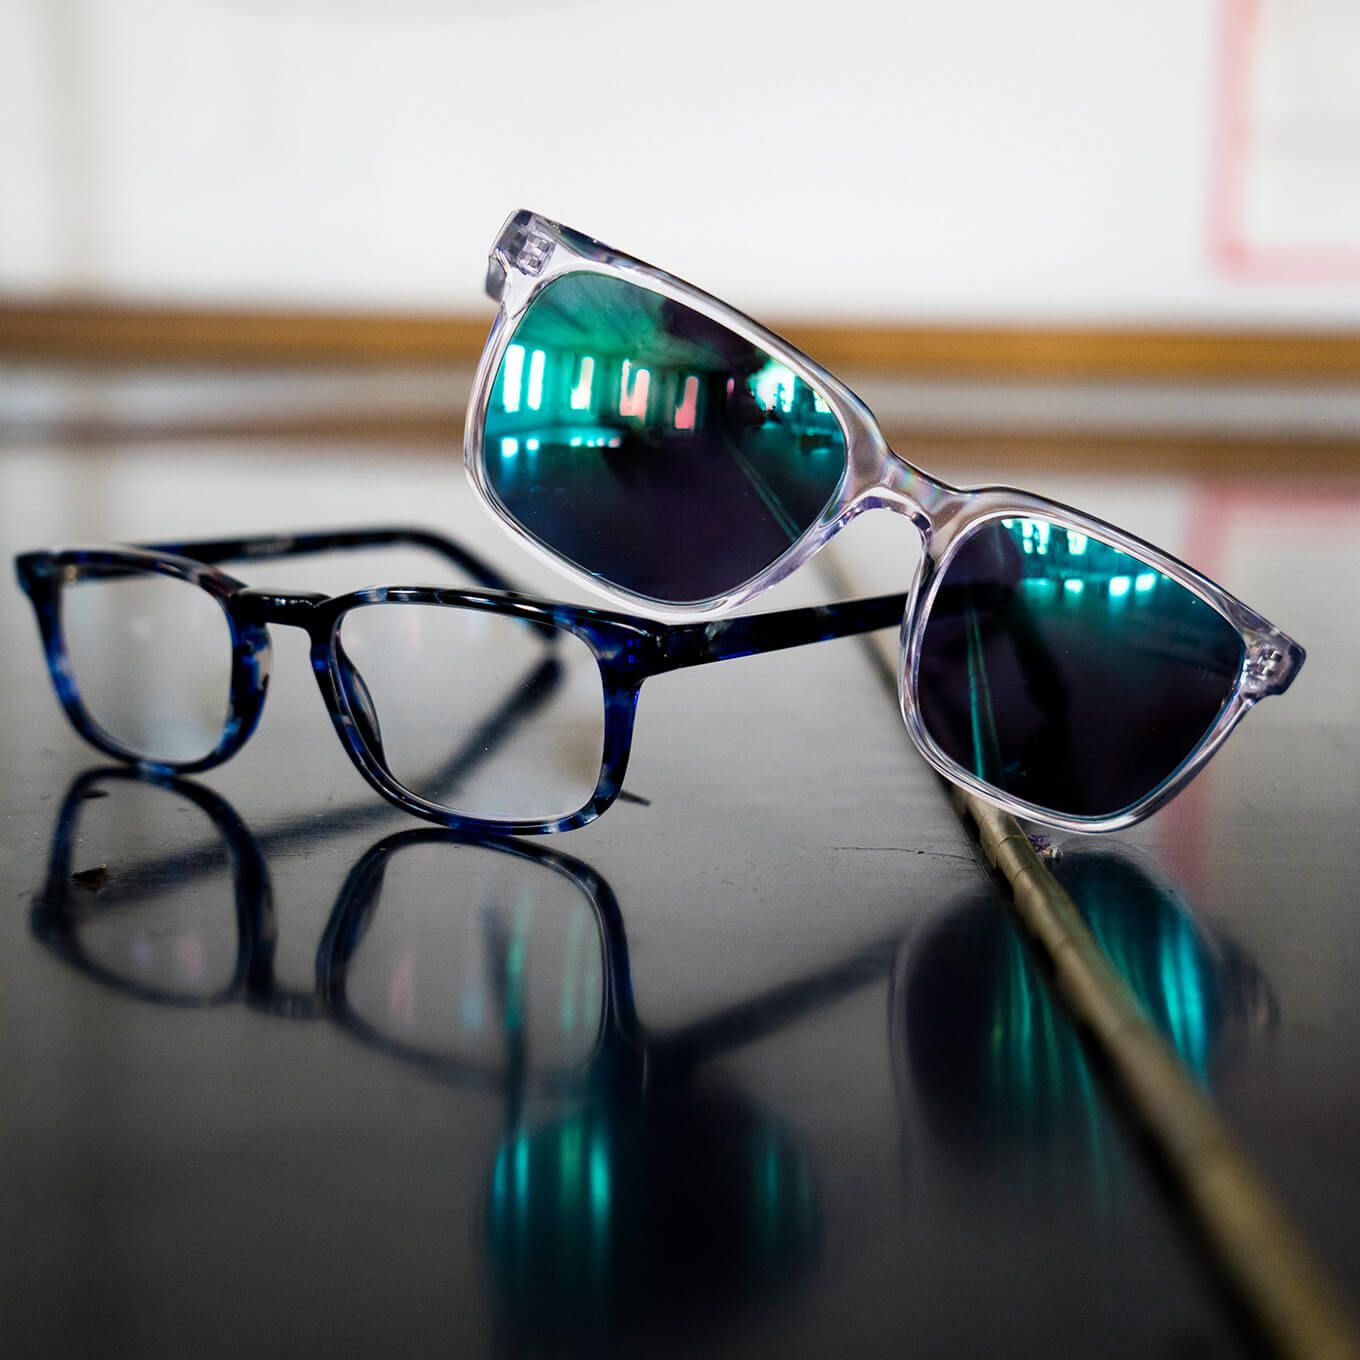 cfcca355d1 Translucent Van Alen sunglasses with green mirror tint and blue  tortoiseshell Eames rectangle eyeglasses from the Zenni Metropolitan  Collection are pictured ...